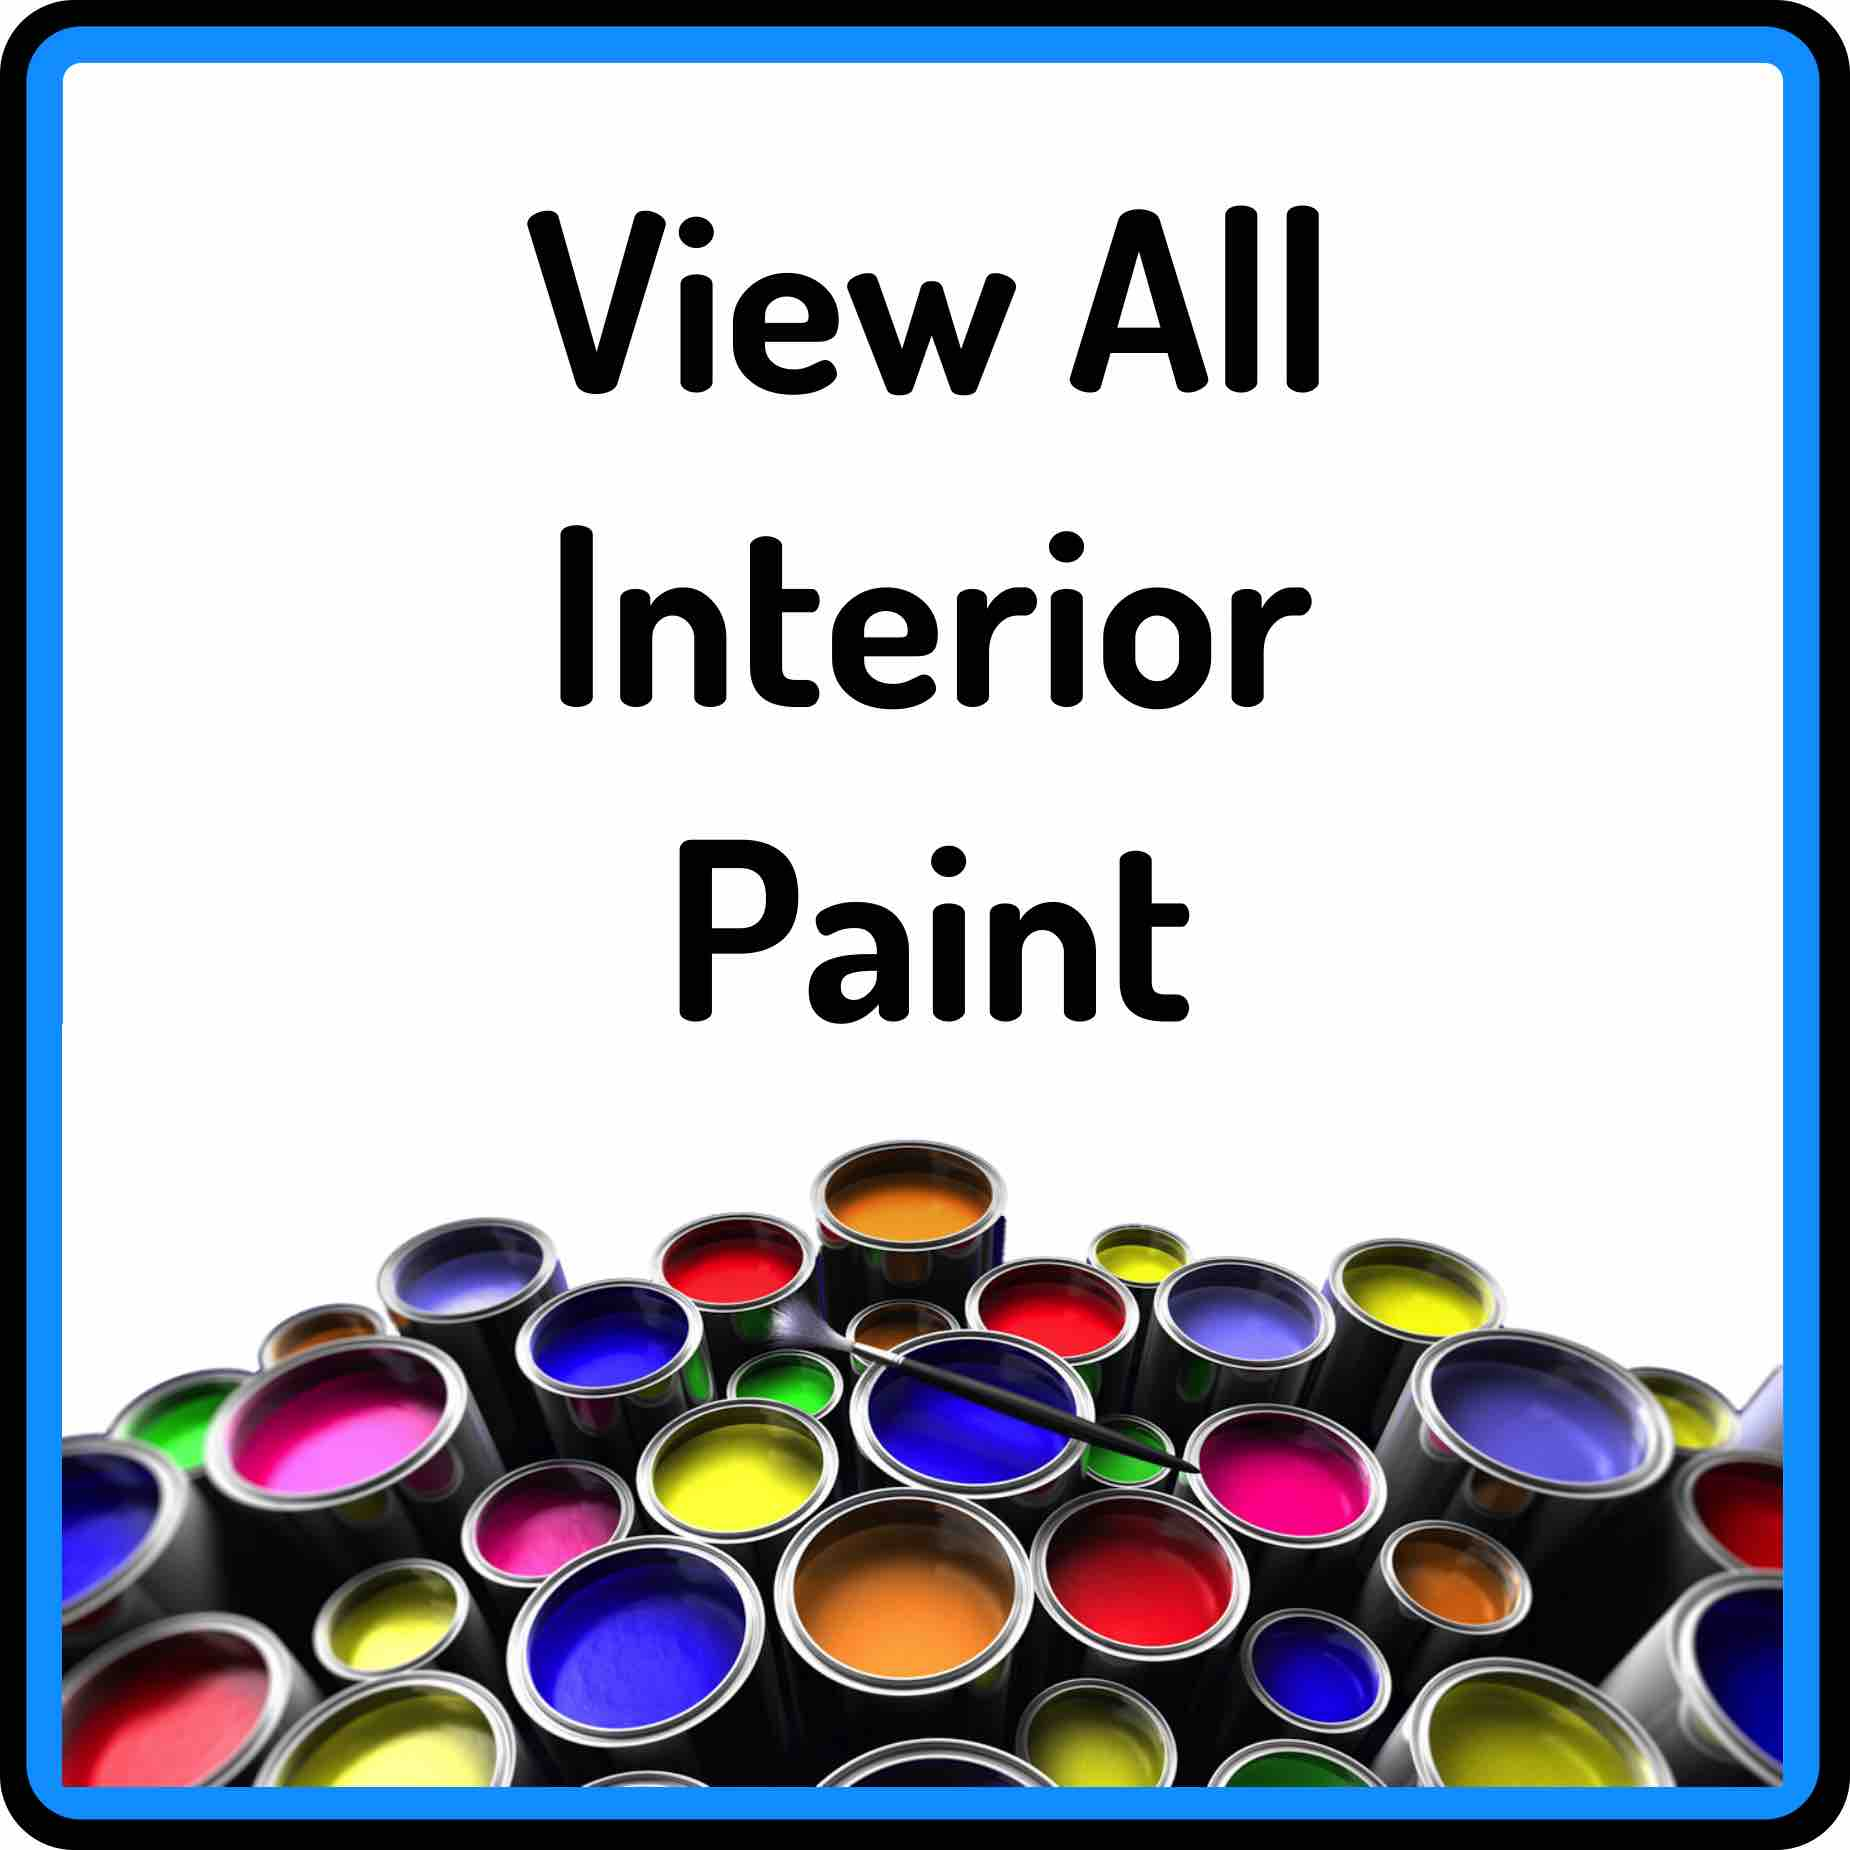 View All Available Interior Paint